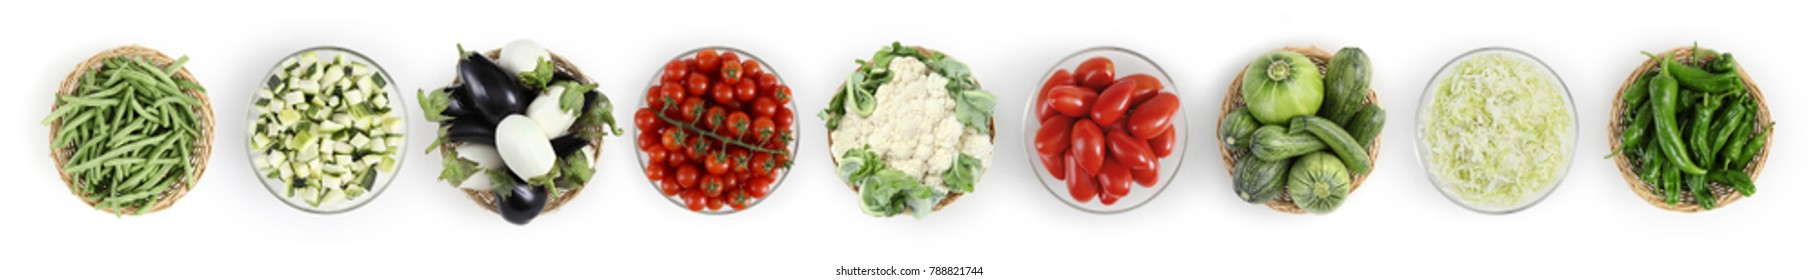 food top view vegetables isolated on white kitchen worktop, web banner copy space template